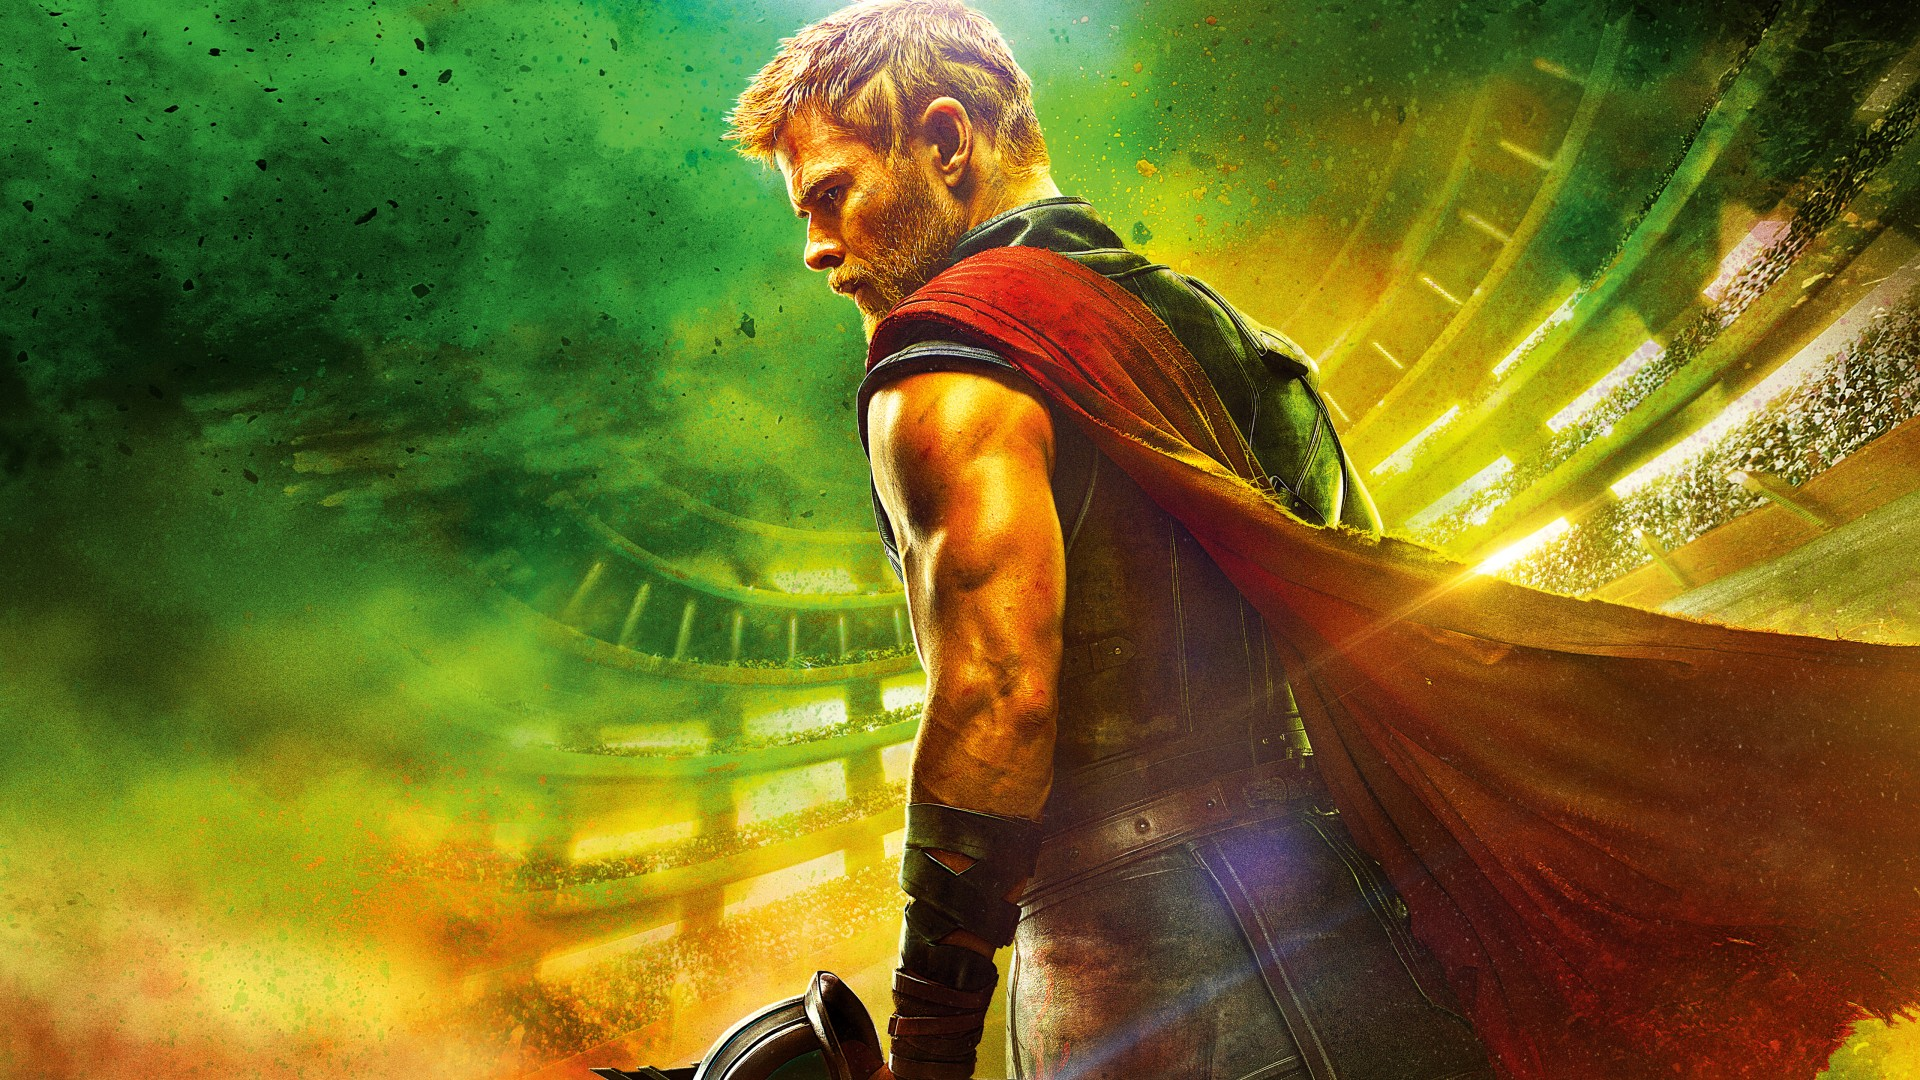 taika-waititi-explains-how-thor-will-change-in-thor-ragnarok-social.jpg